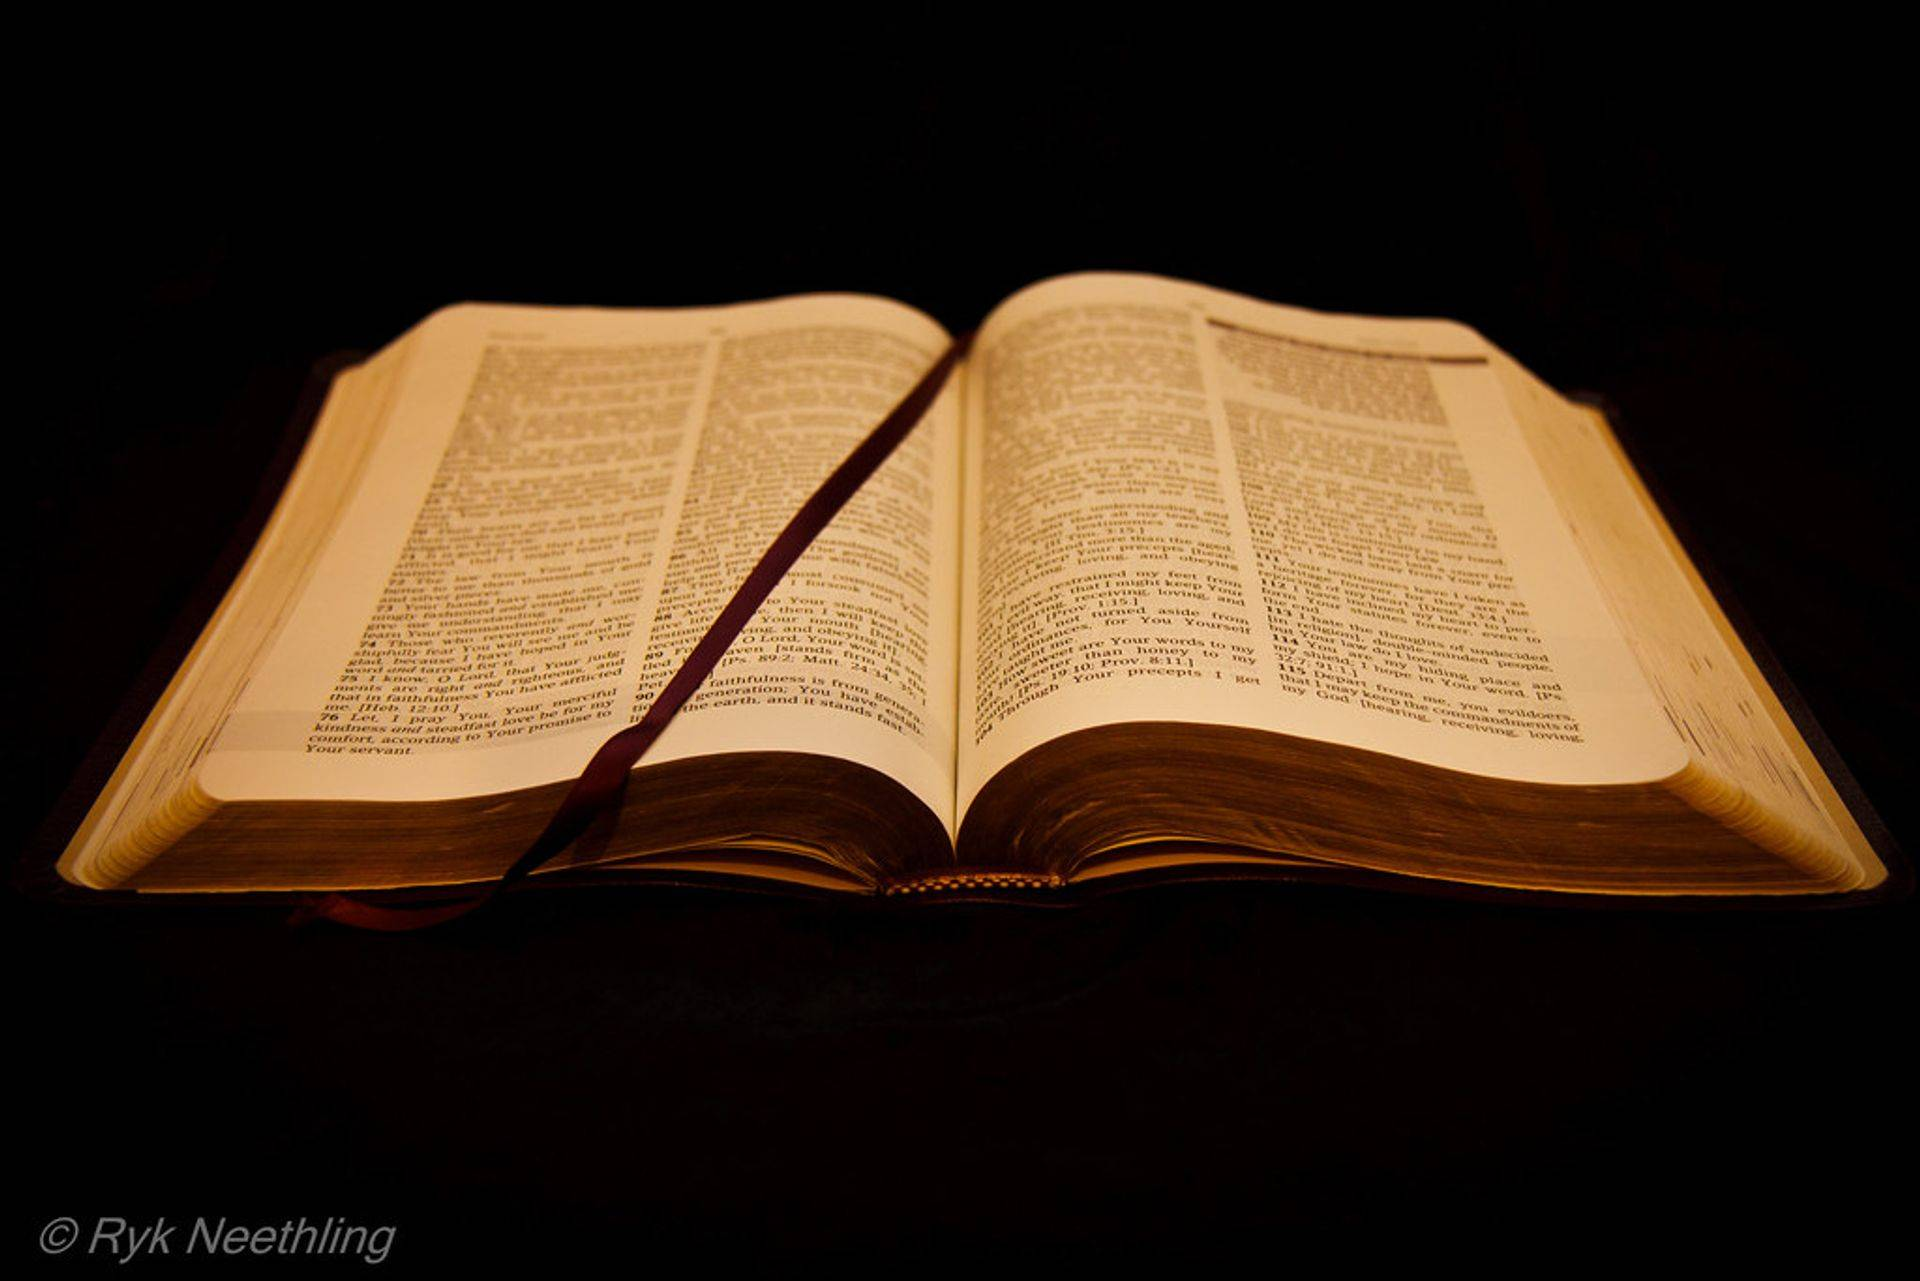 We speak where the Bible speaks and are silent where the Bible is silent.